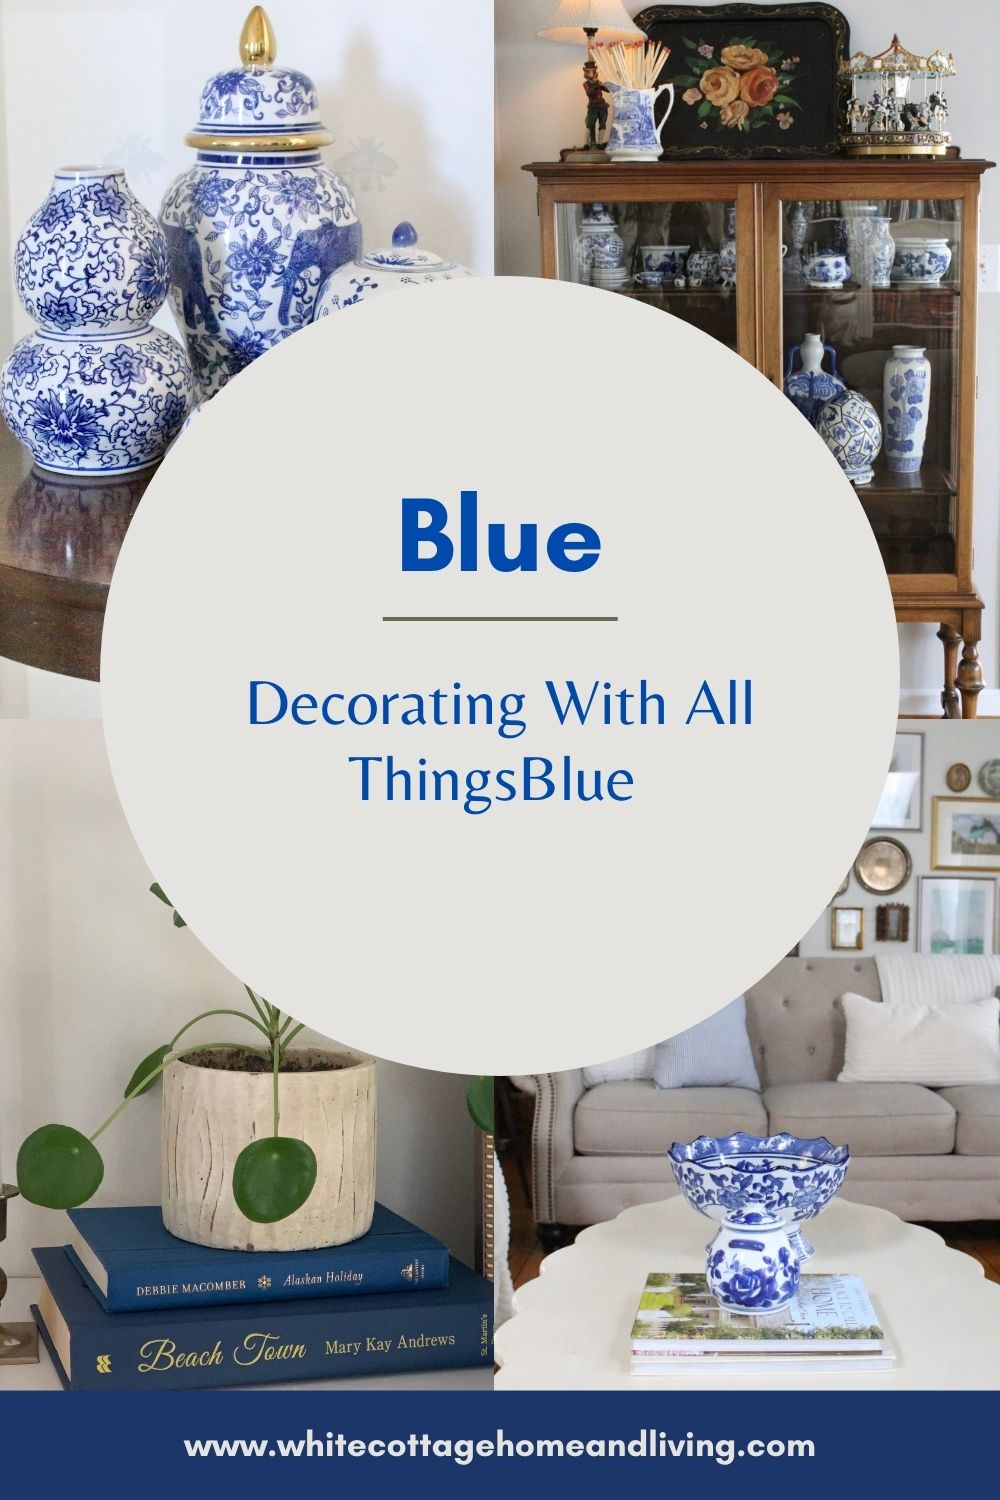 Decorating with All Things Blue~ White Cottage Home & Living